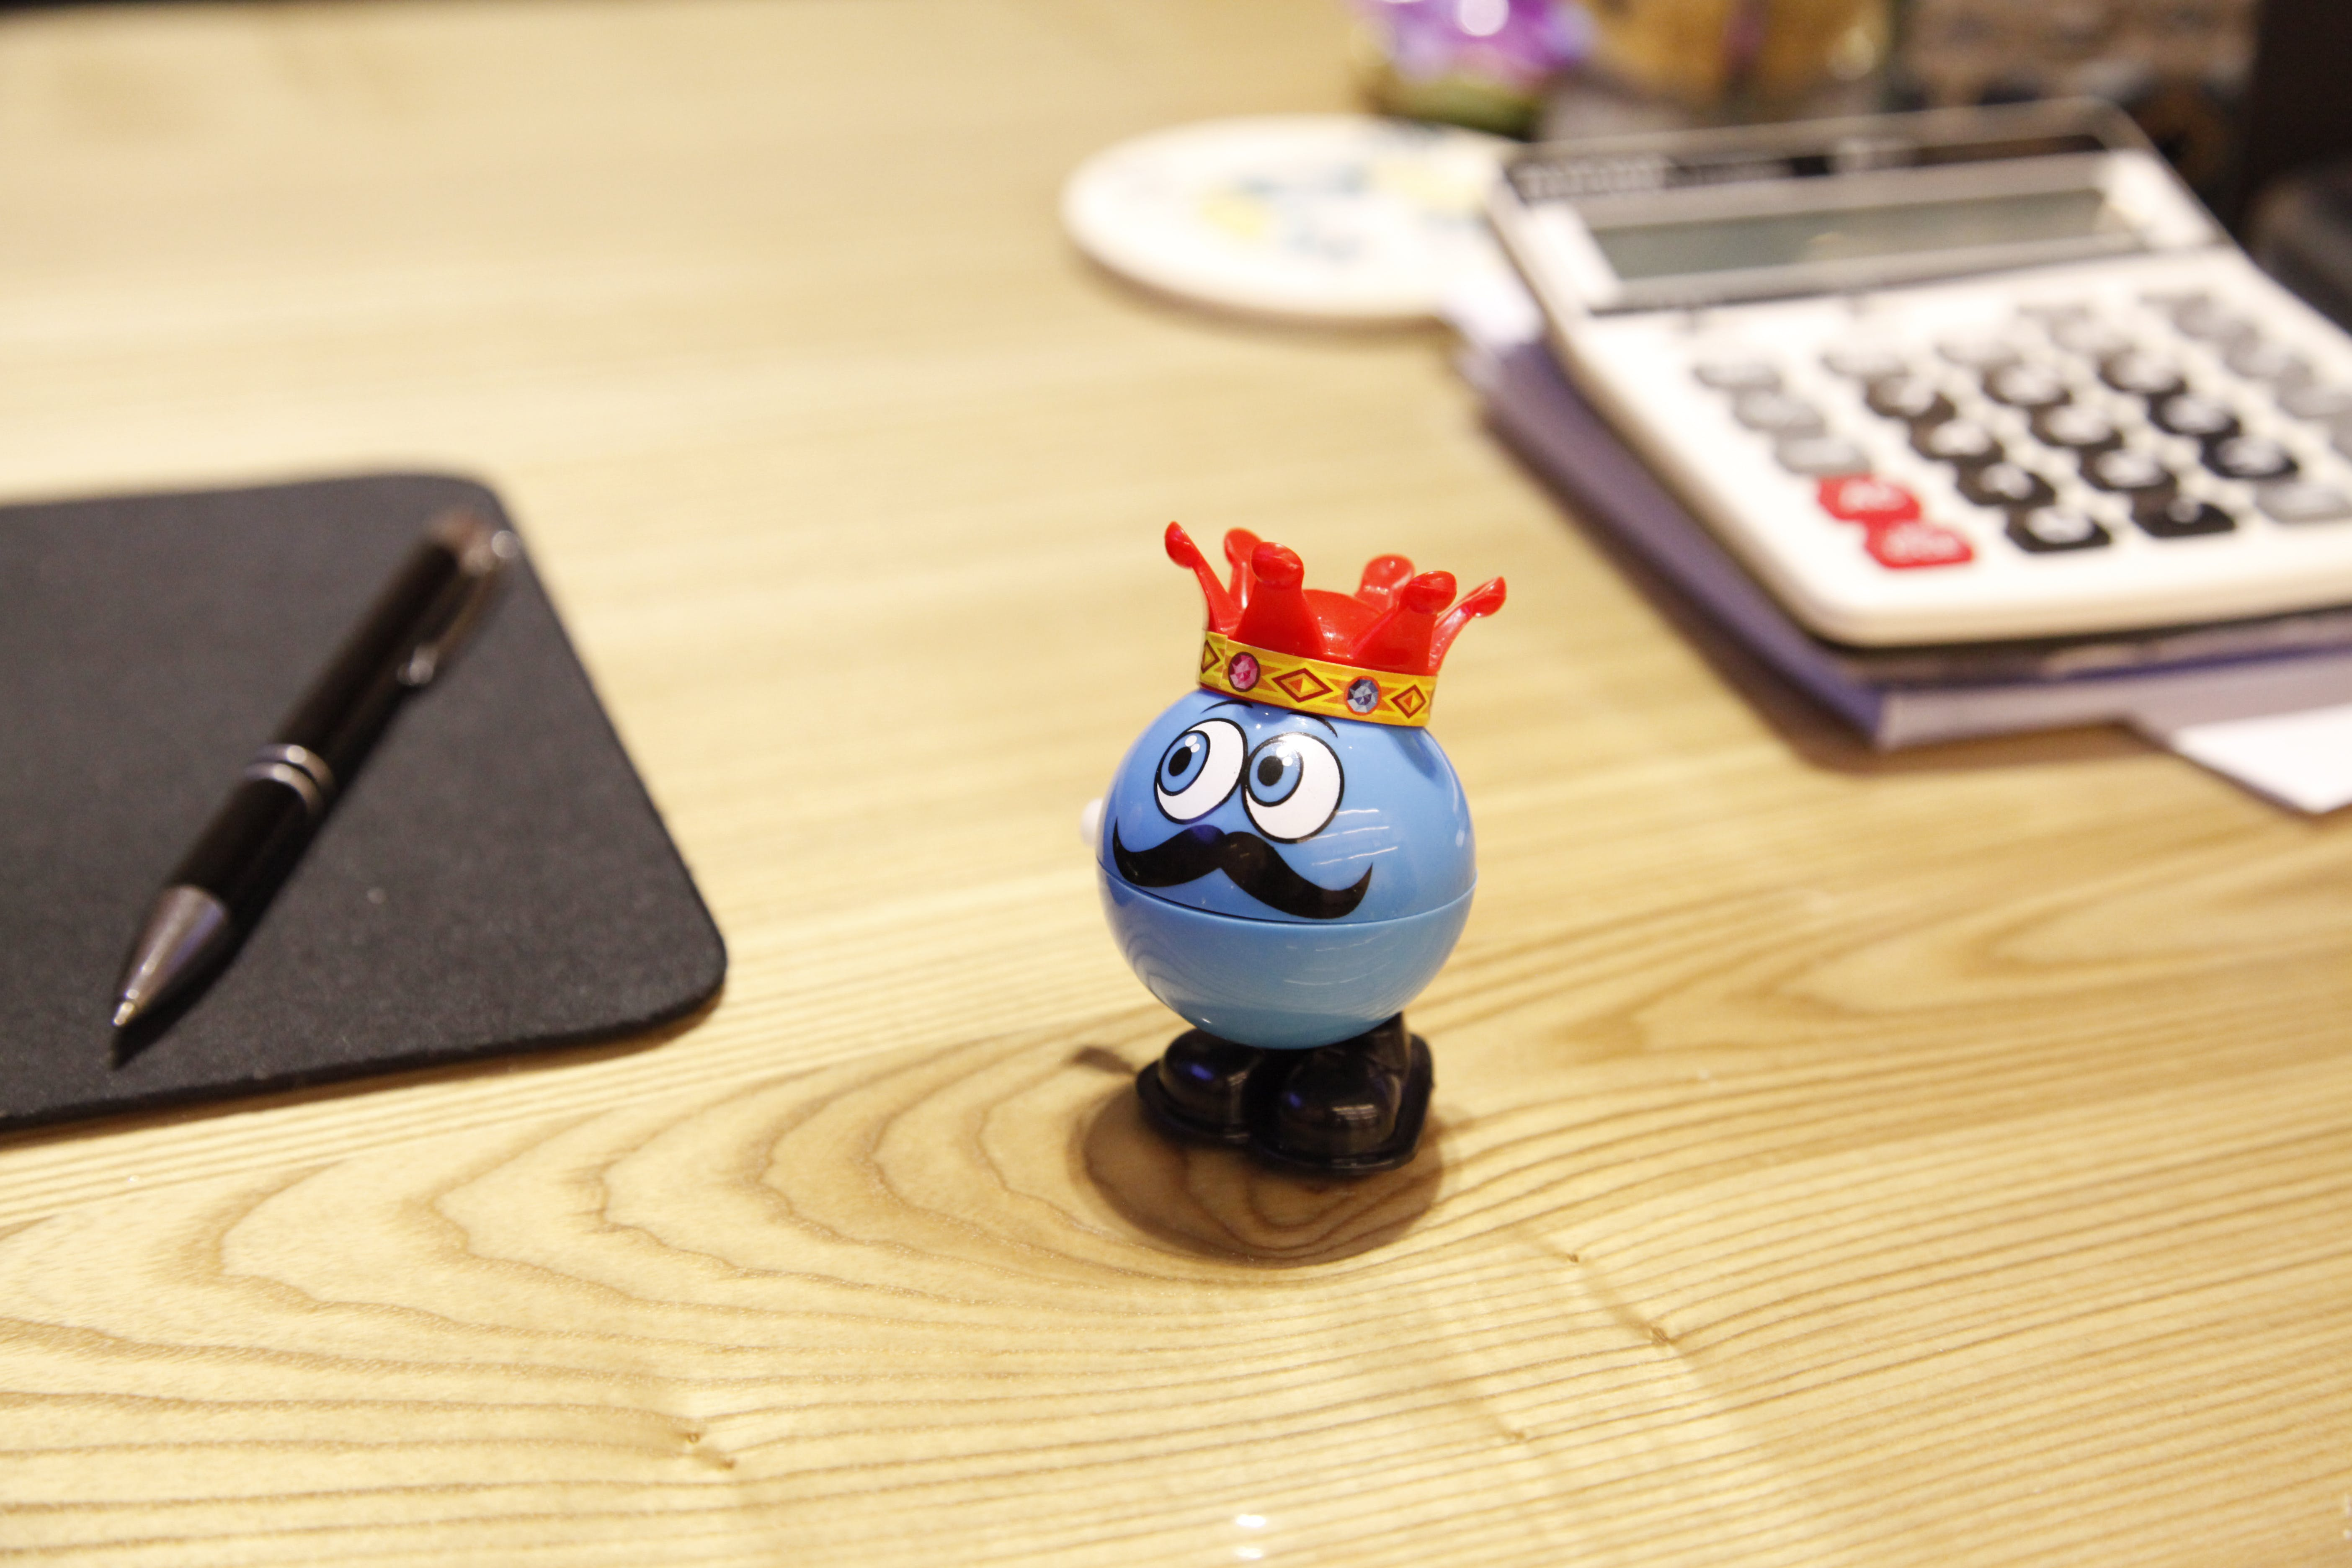 Blue Round Plastic Toy on a desk